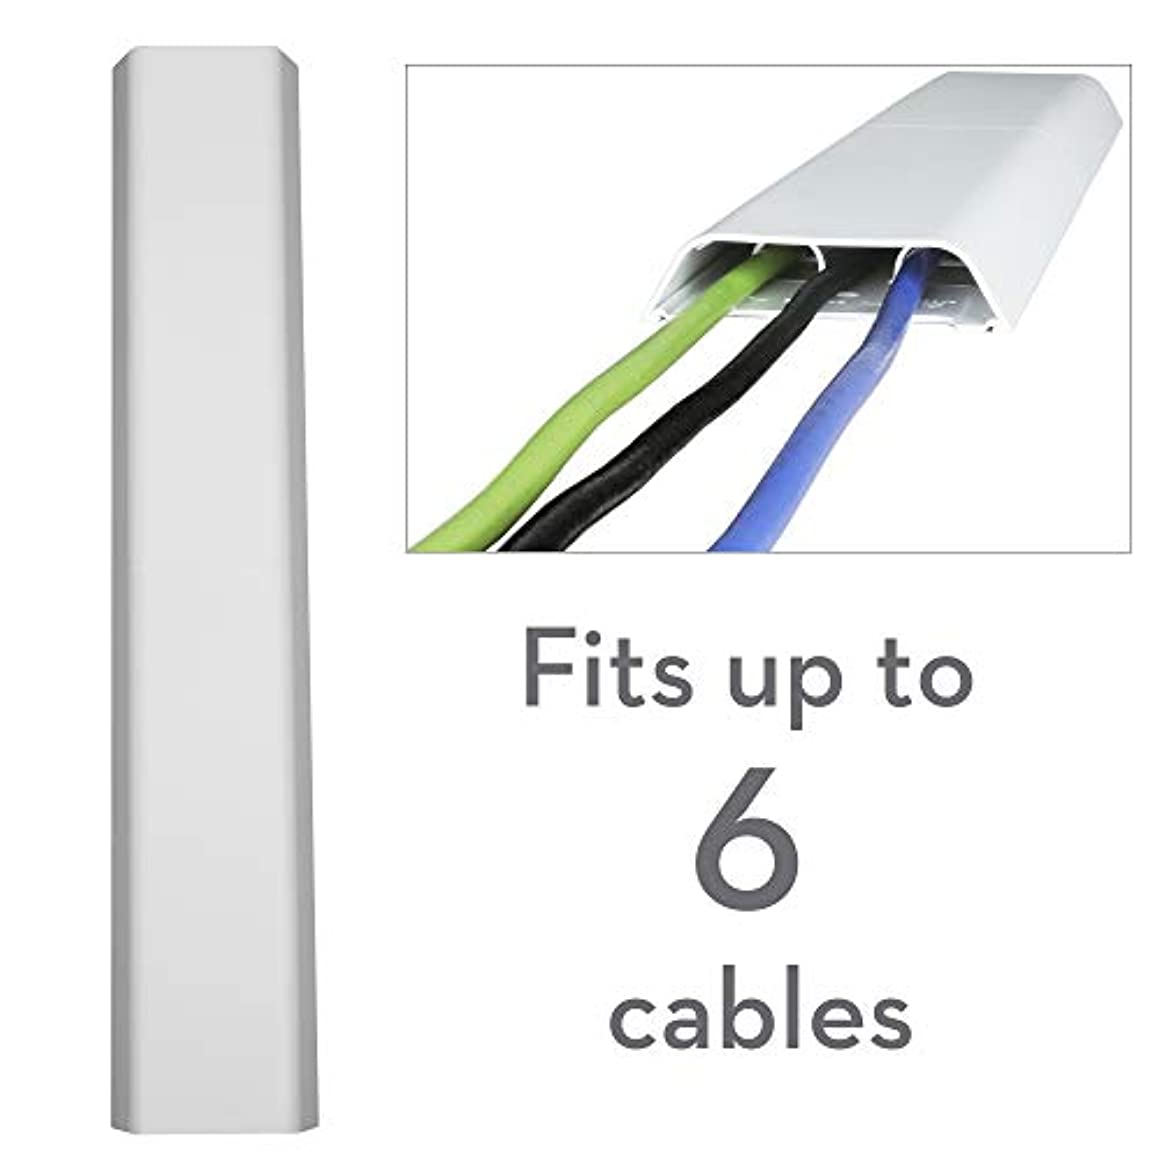 OmniMount OCM On-Wall Cable Management Covers, Paintable, Flat Design to Conceal up to 6 Cables, Set of Three, 3.25